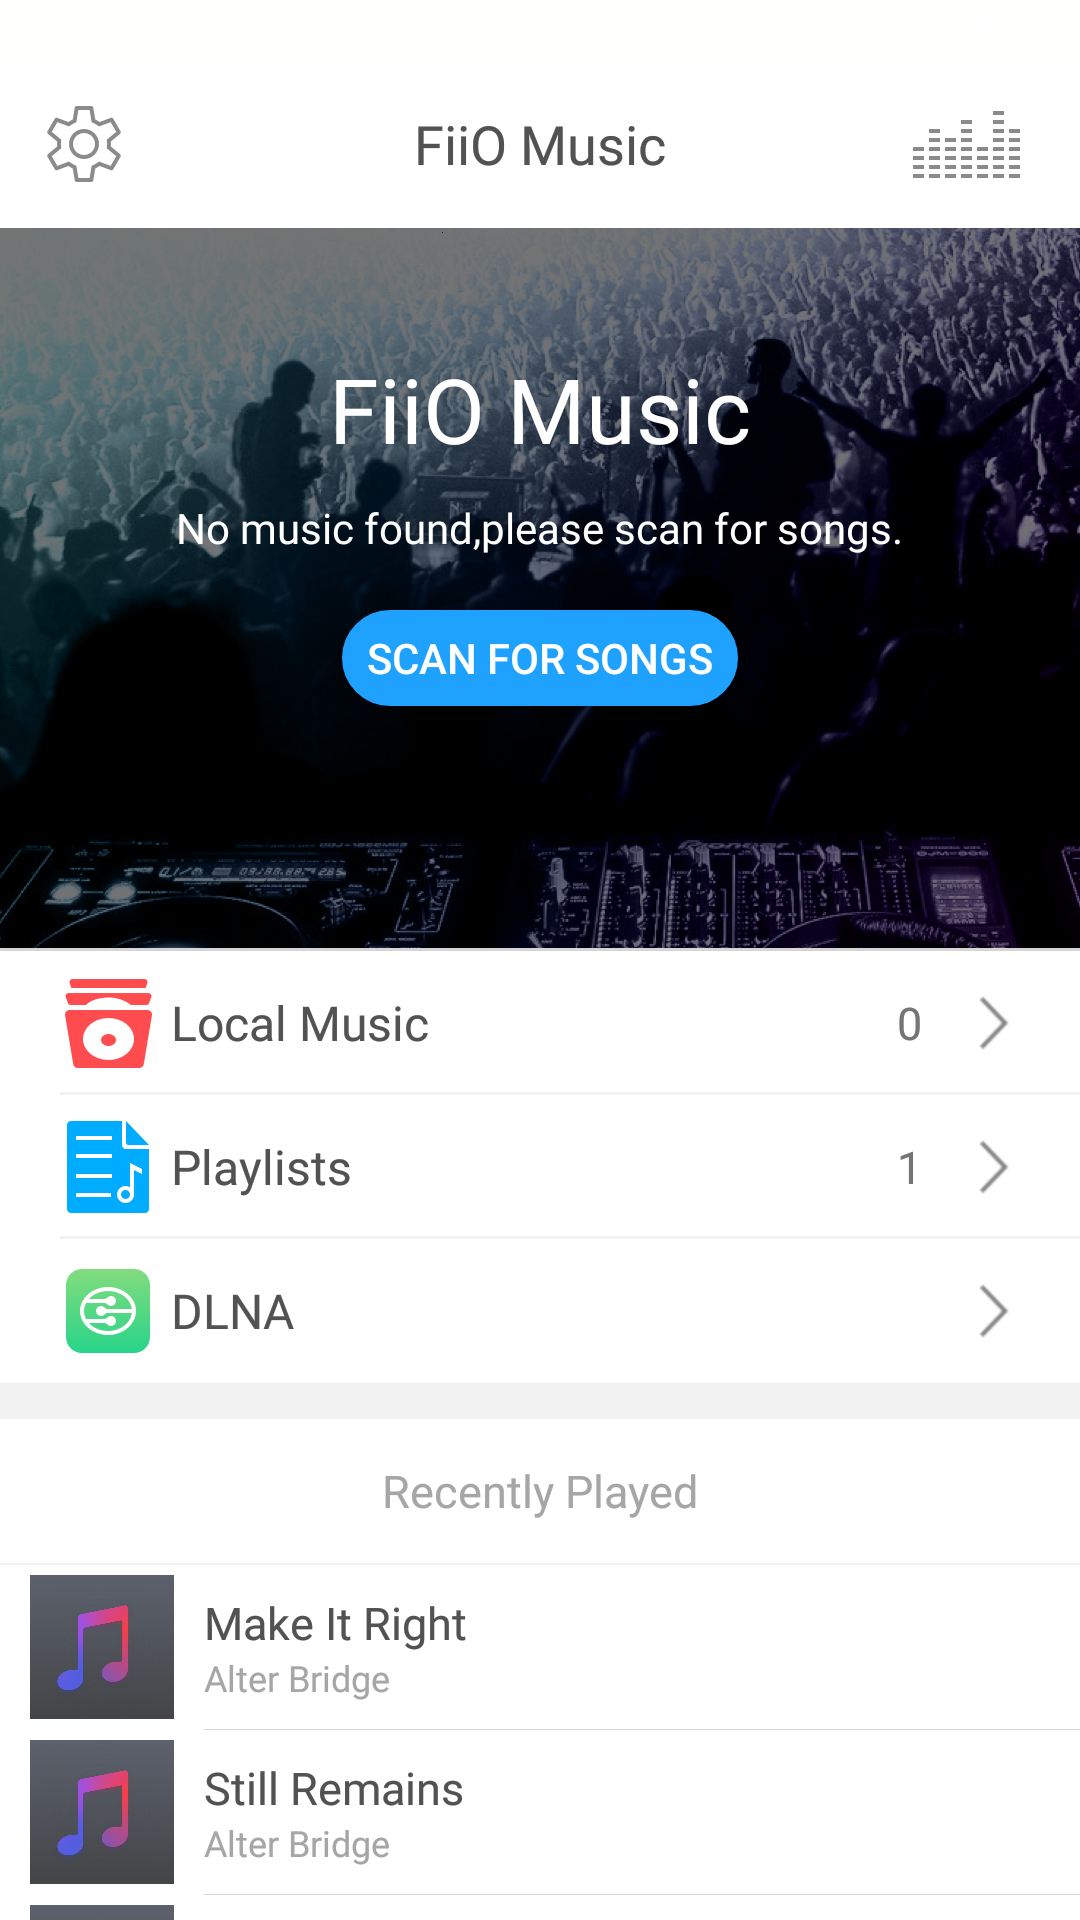 Screenshot_2018-07-29-16-09-38-082_com.fiio.music.png